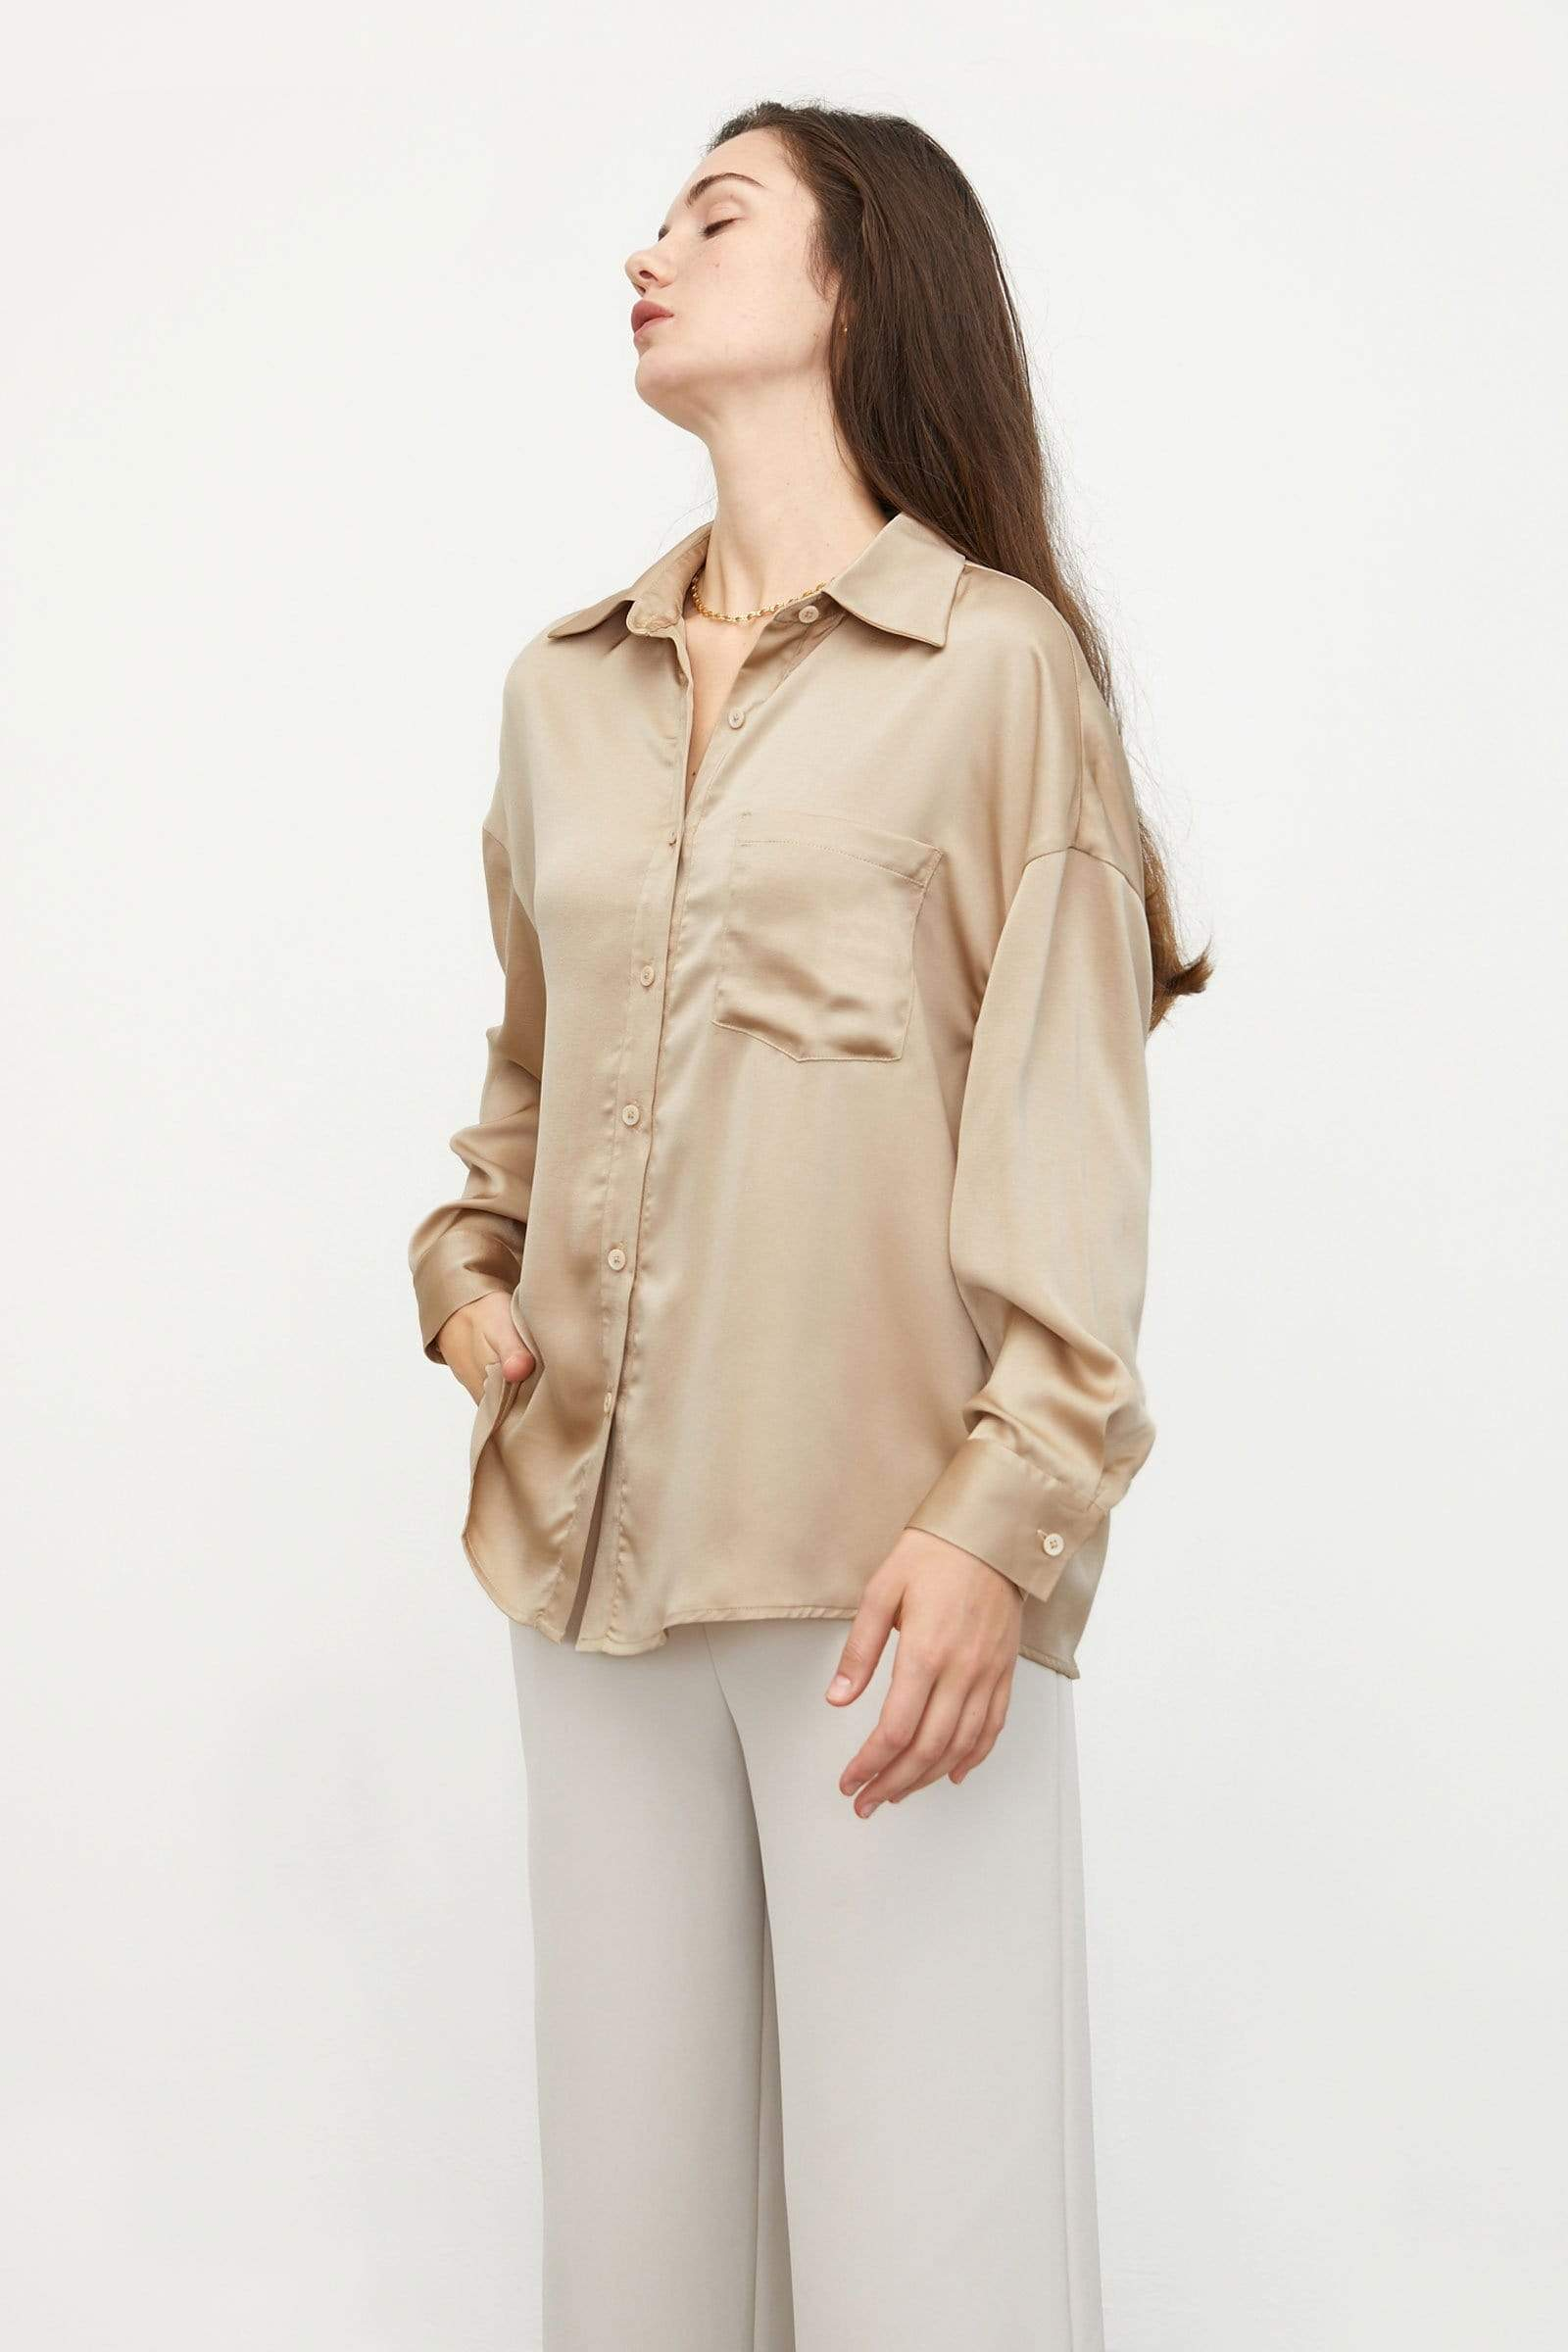 Silky Champagne Button-Up Blouse